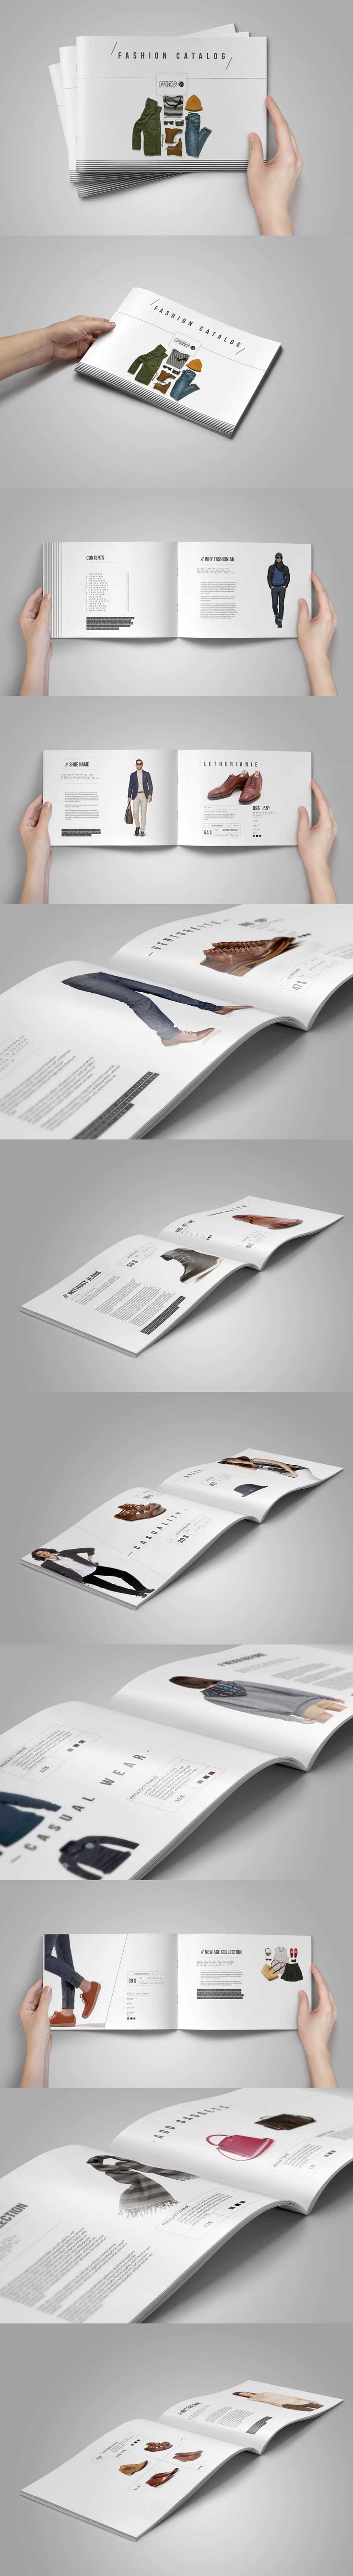 Horizontal Product Catalog Template InDesign INDD - A4 and US Letter Size